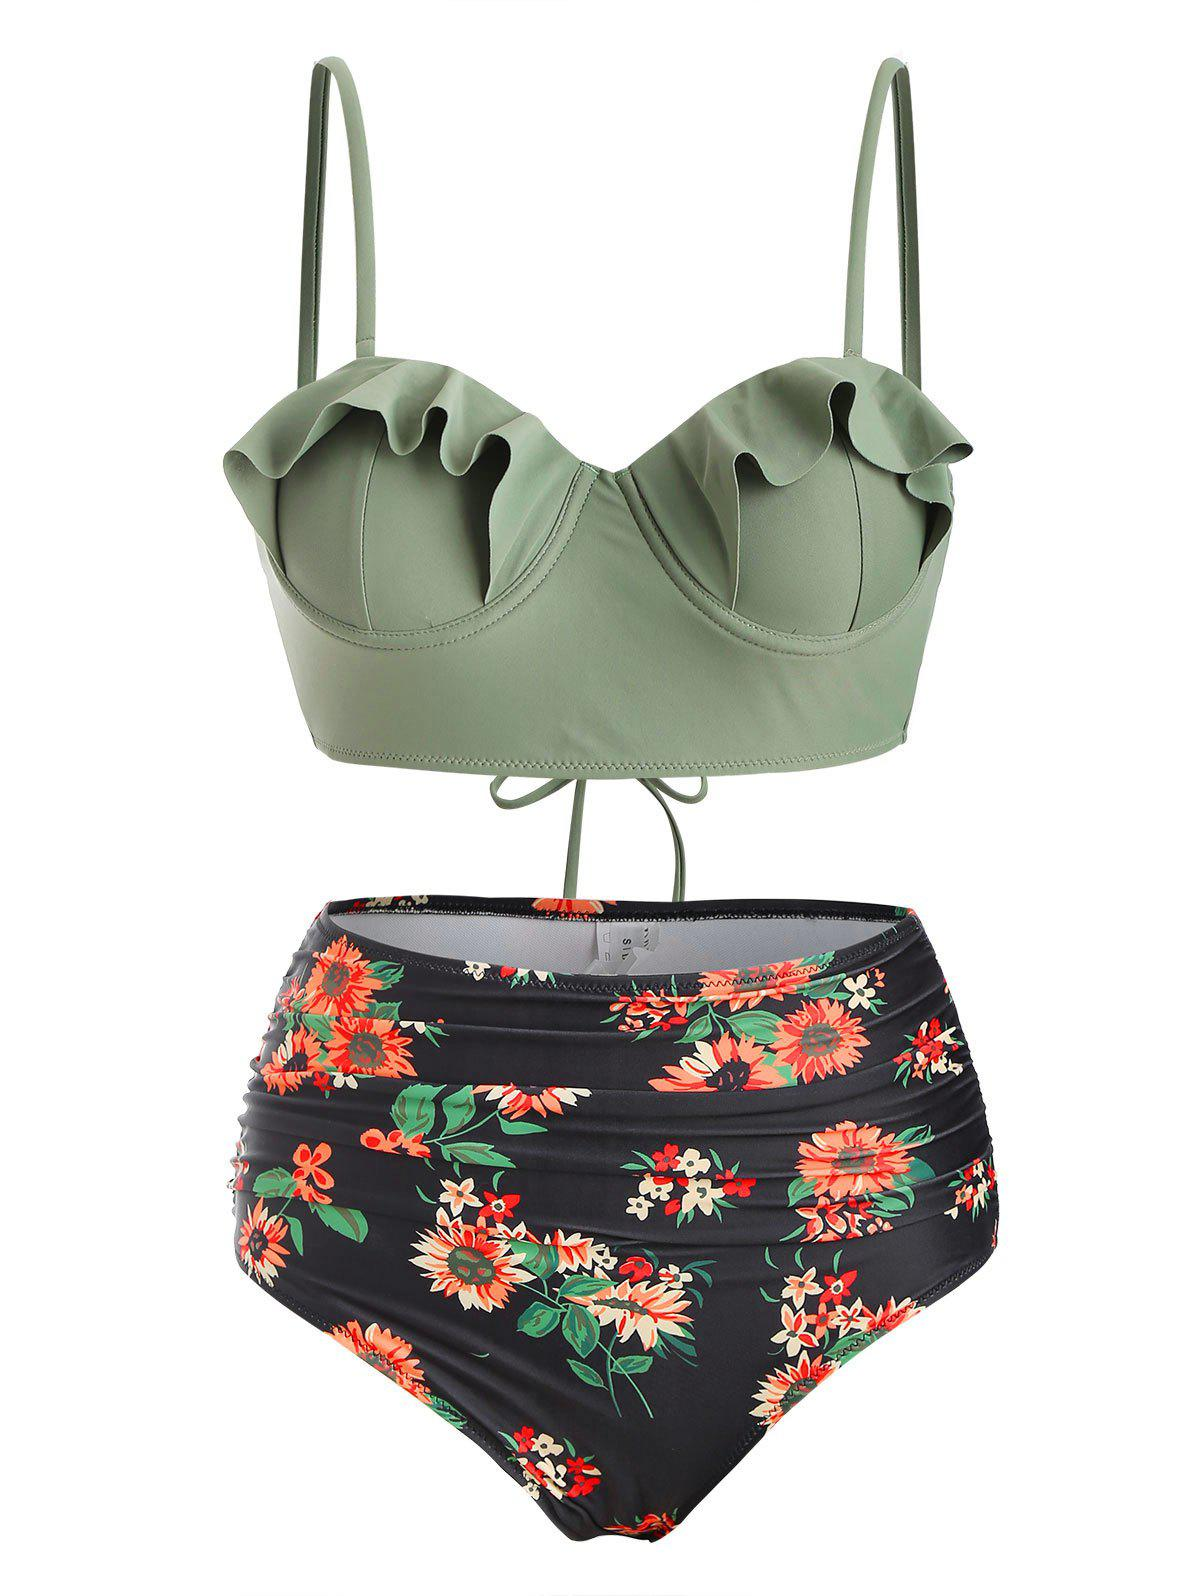 Sale Floral Ruffles Push Up Lace-up Ruched Bikini Swimsuit